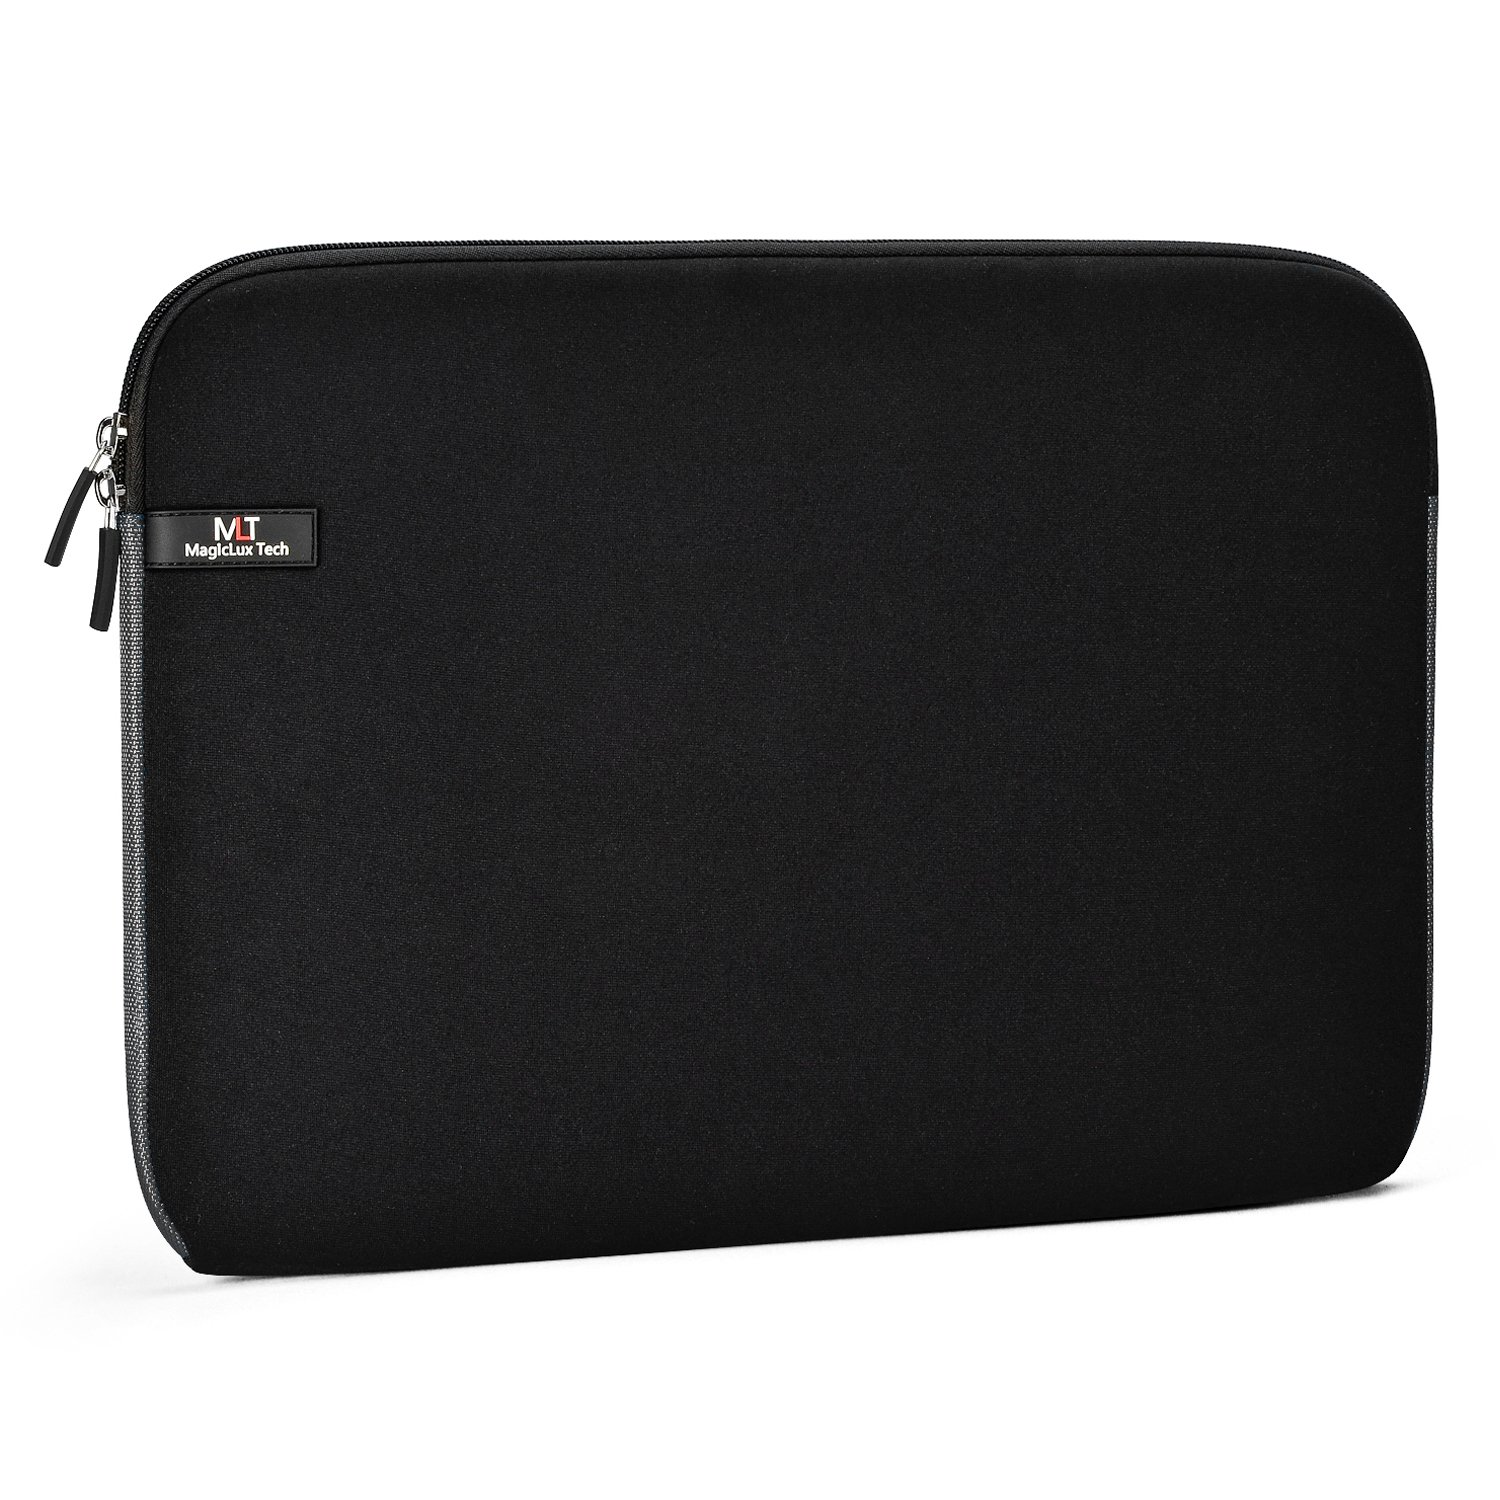 MagicLux Tech 13.3-Inch Laptop Sleeve Water Resistant Neoprene Protective Laptop Case Cover Bag